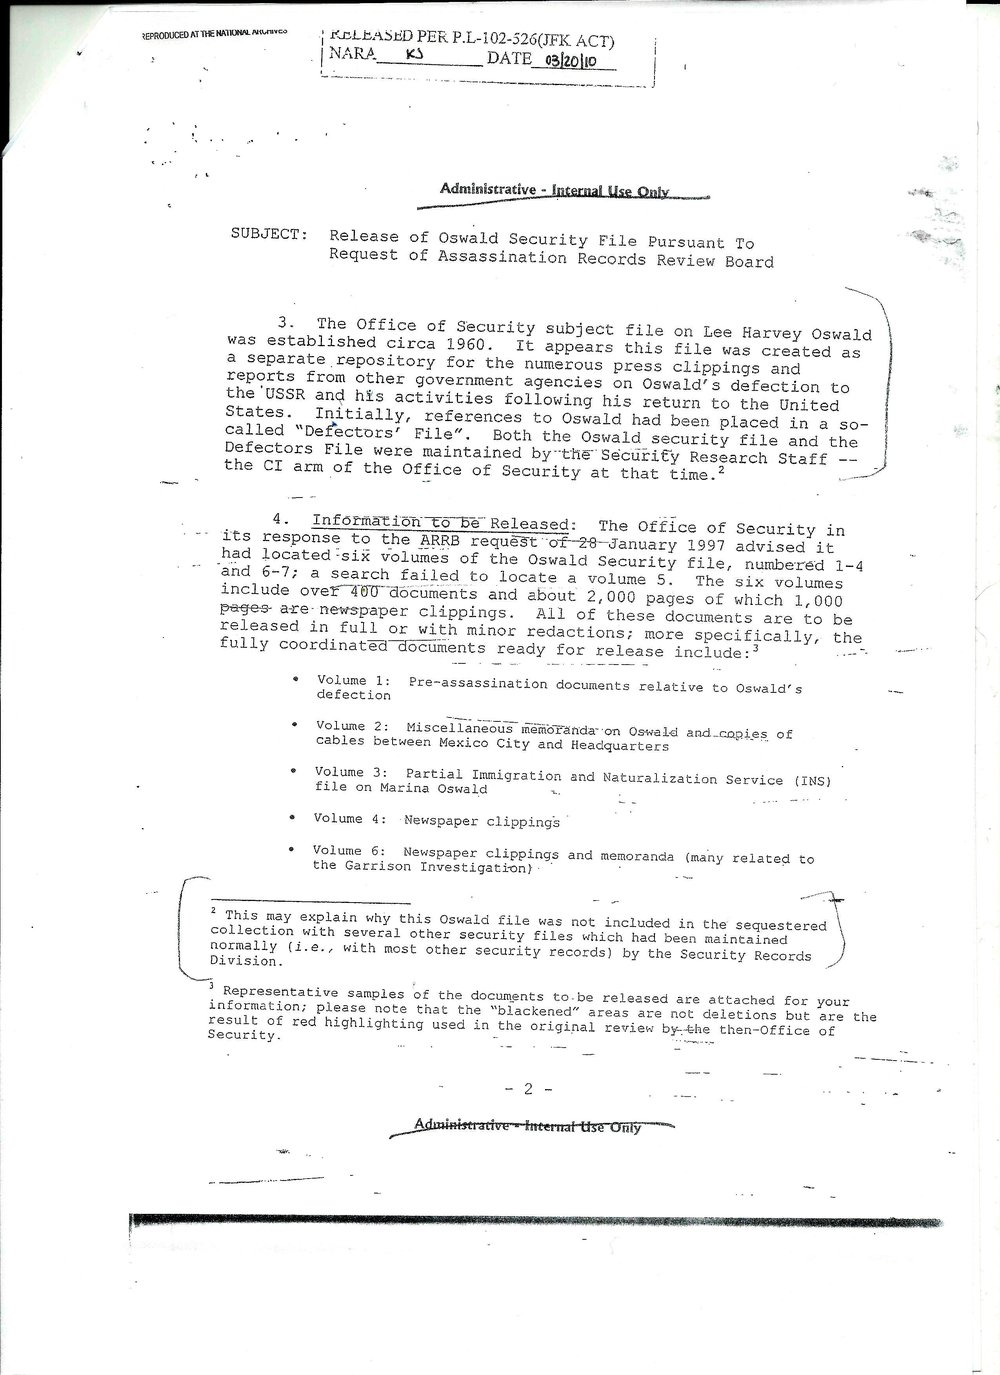 3APRIL98 CHIEF INFORMATION REVIEW GROUP RE LHO OS VOL 5 PG 2..jpg